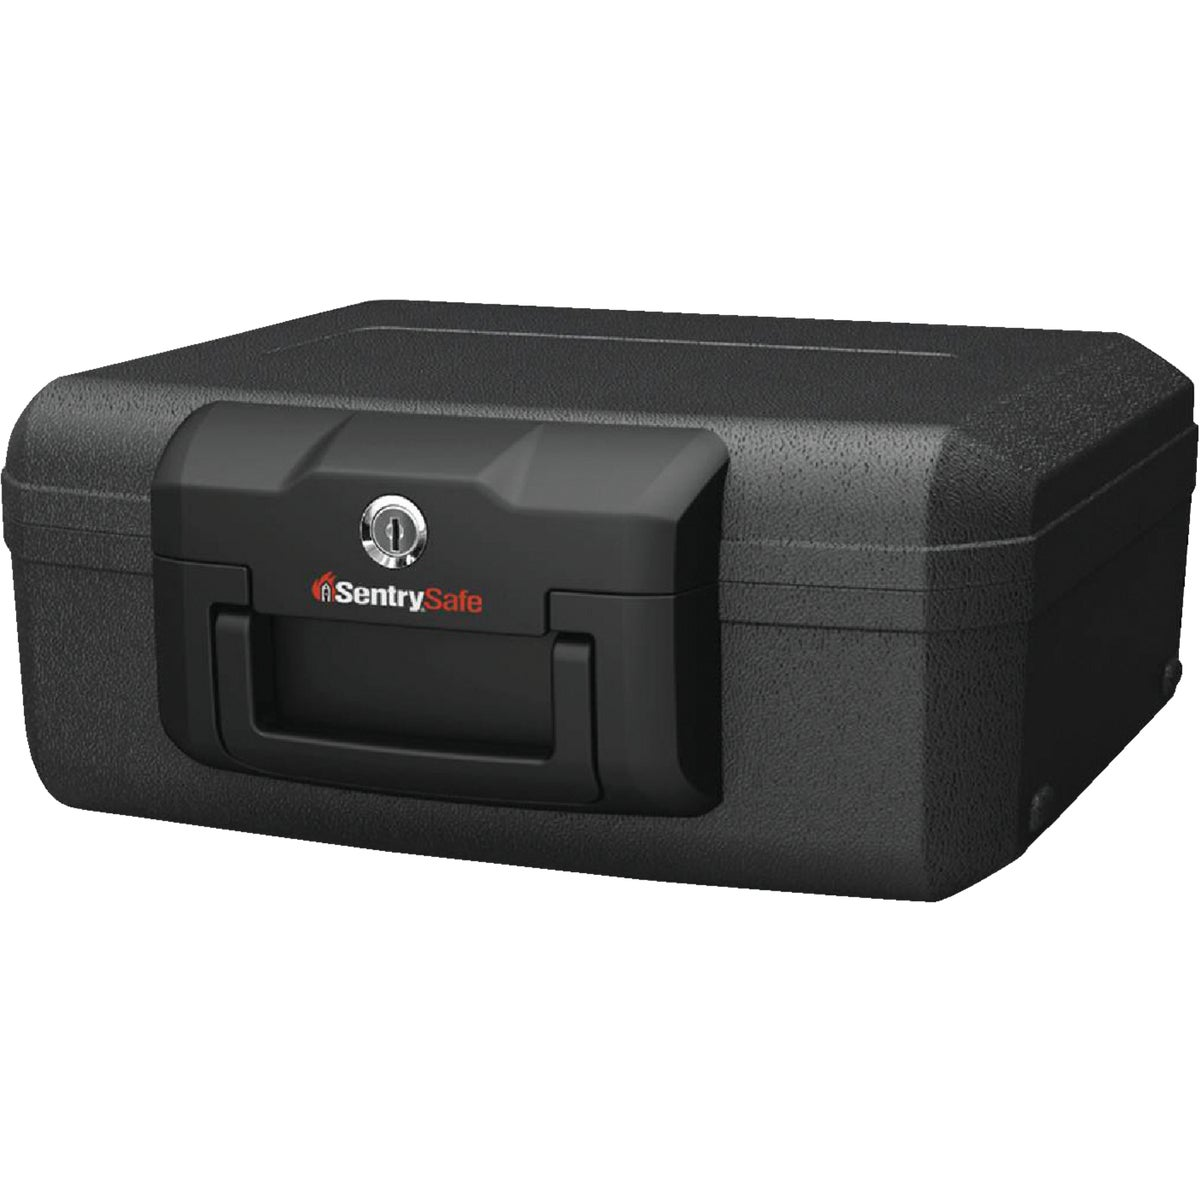 FIRE SECURITY CHEST - 1200 by Sentry Safes